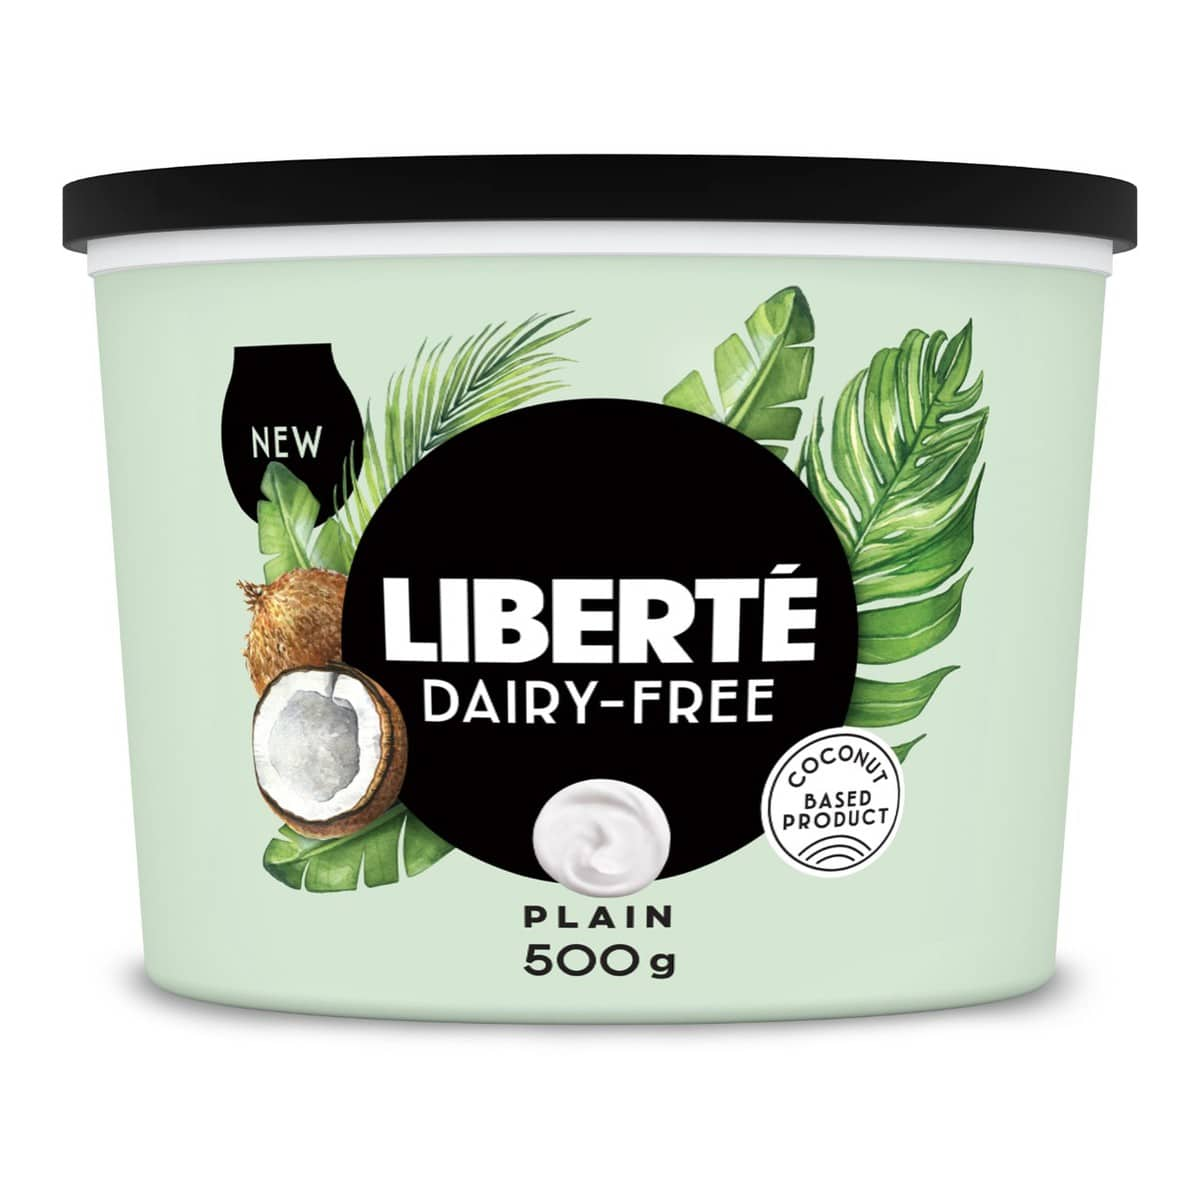 A container of Liberté Dairy Free.